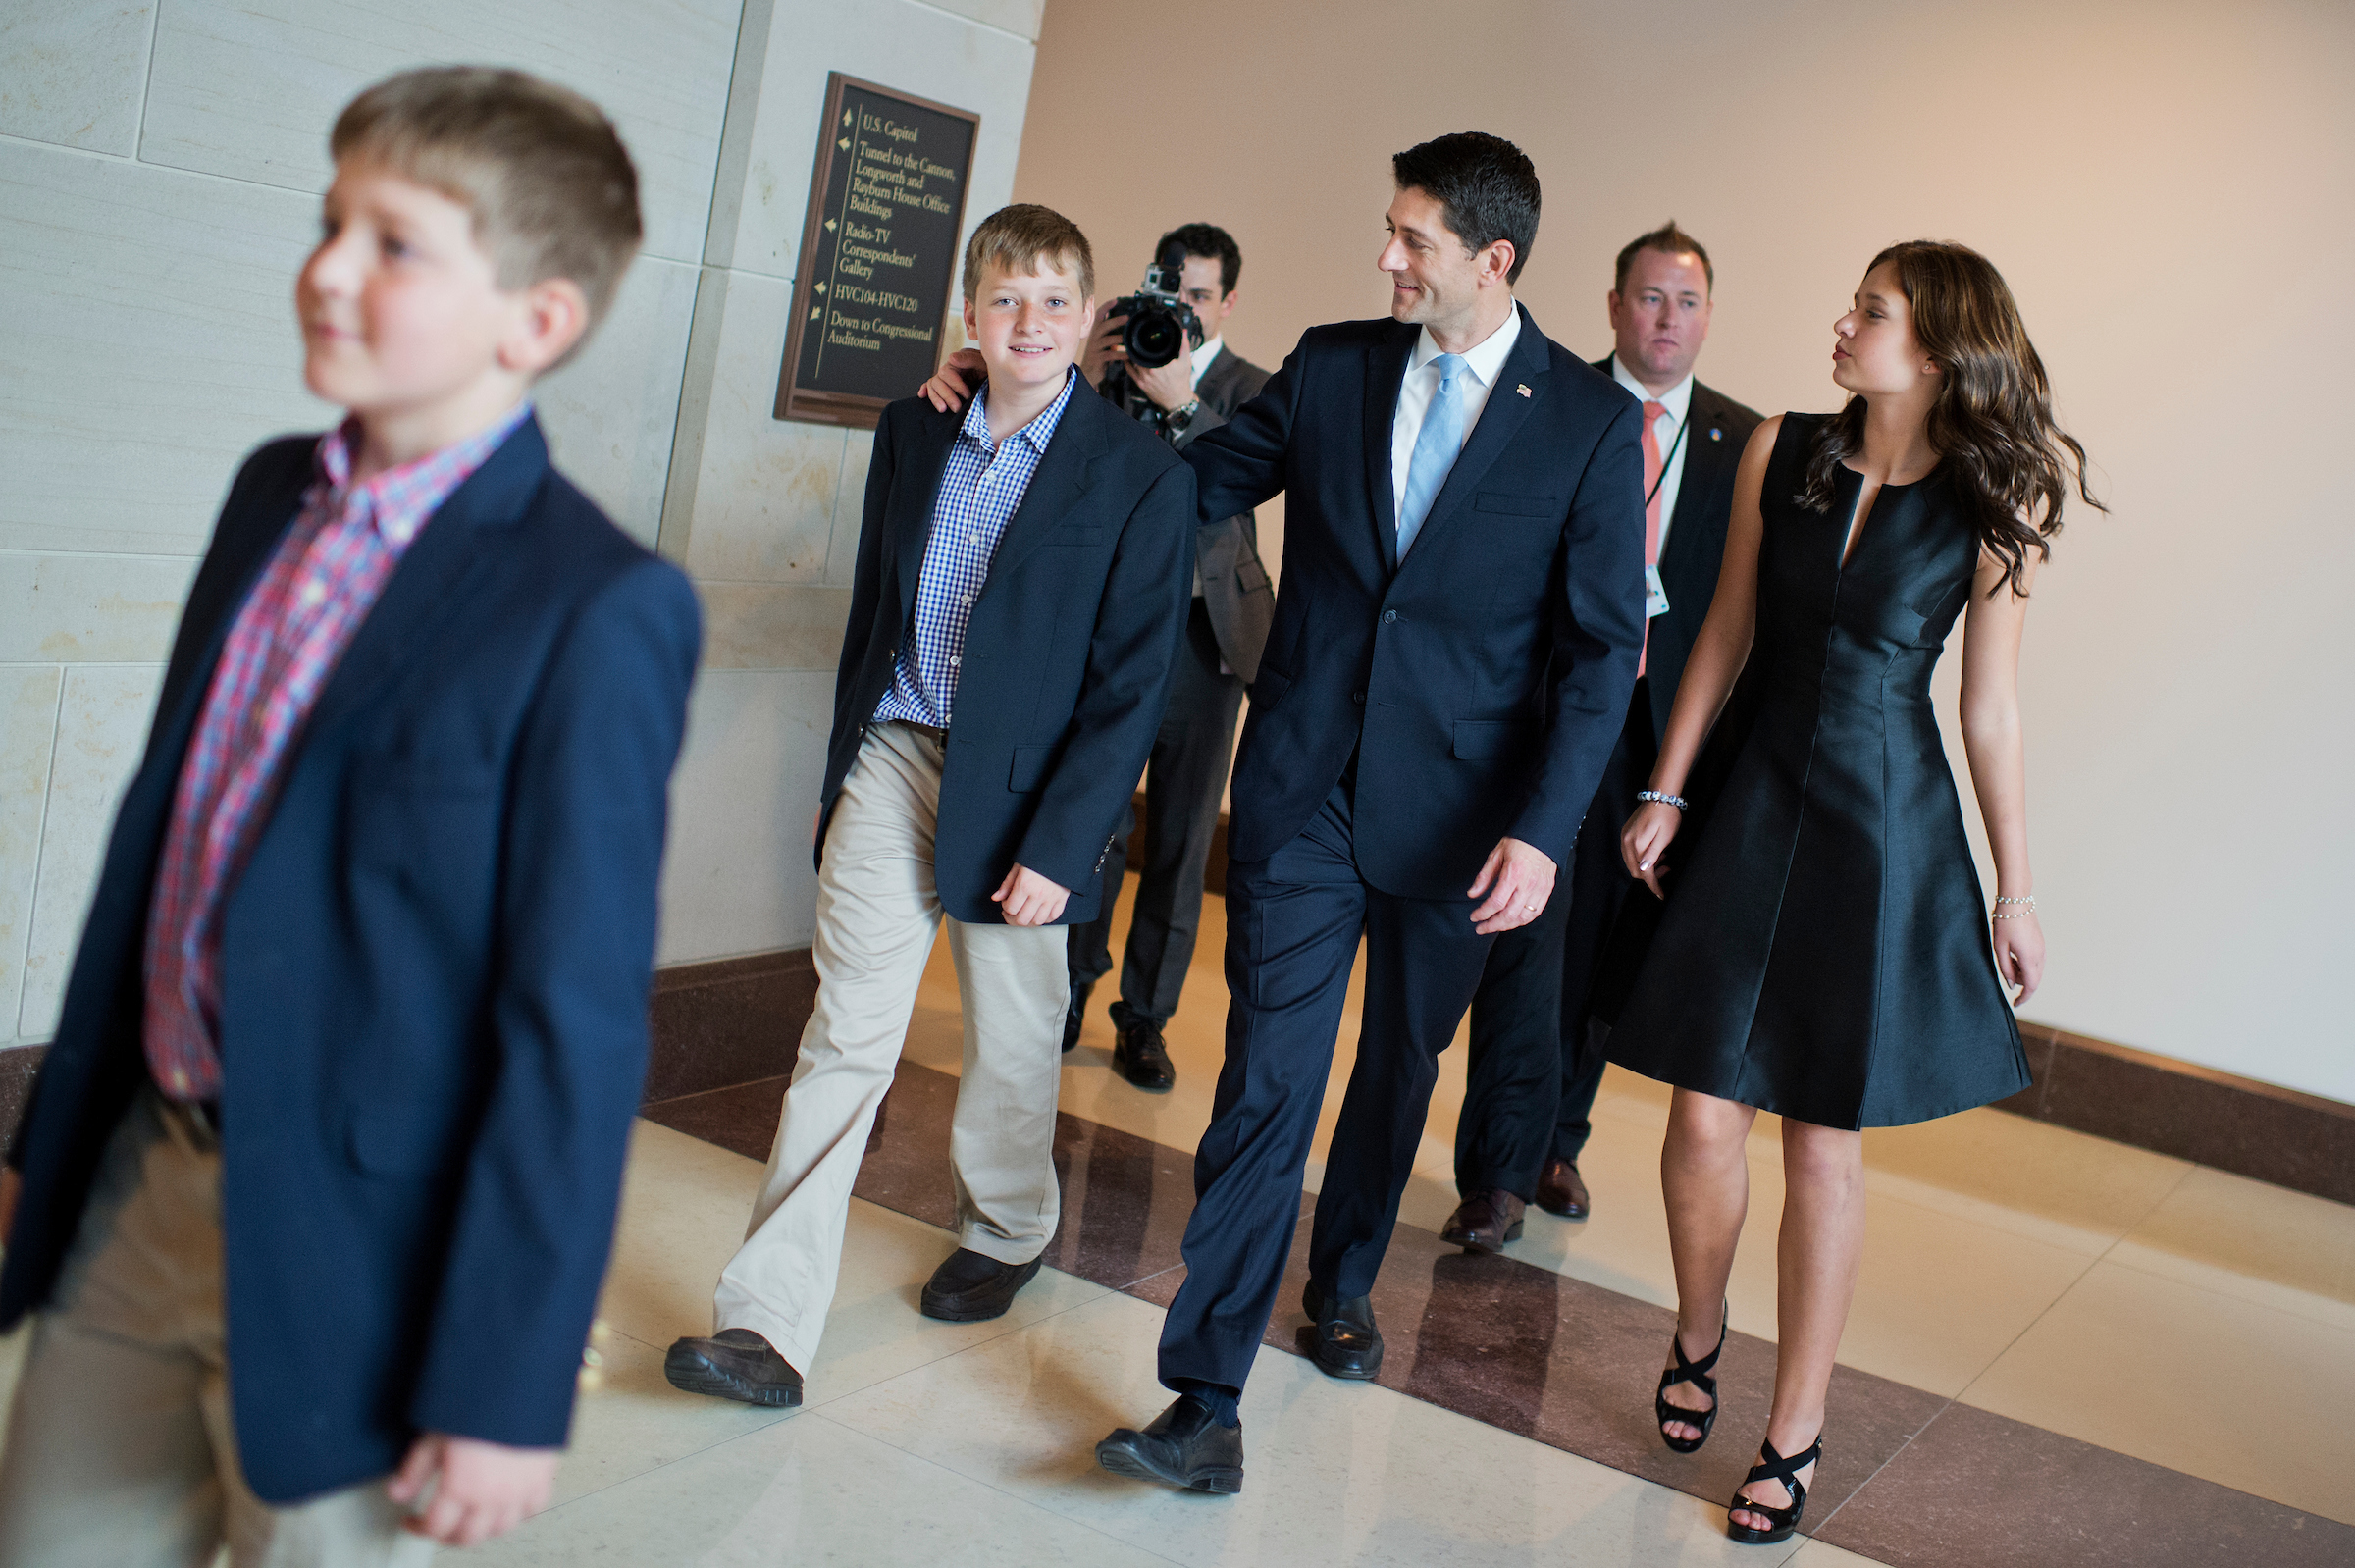 UNITED STATES - OCTOBER 29: Rep. Paul Ryan, R-Wisc., walks with his children, from left, Sam, Charlie, and Liza, after being sworn in on the House floor as the 54th Speaker of the House, October 29, 2015. (Photo By Tom Williams/CQ Roll Call)